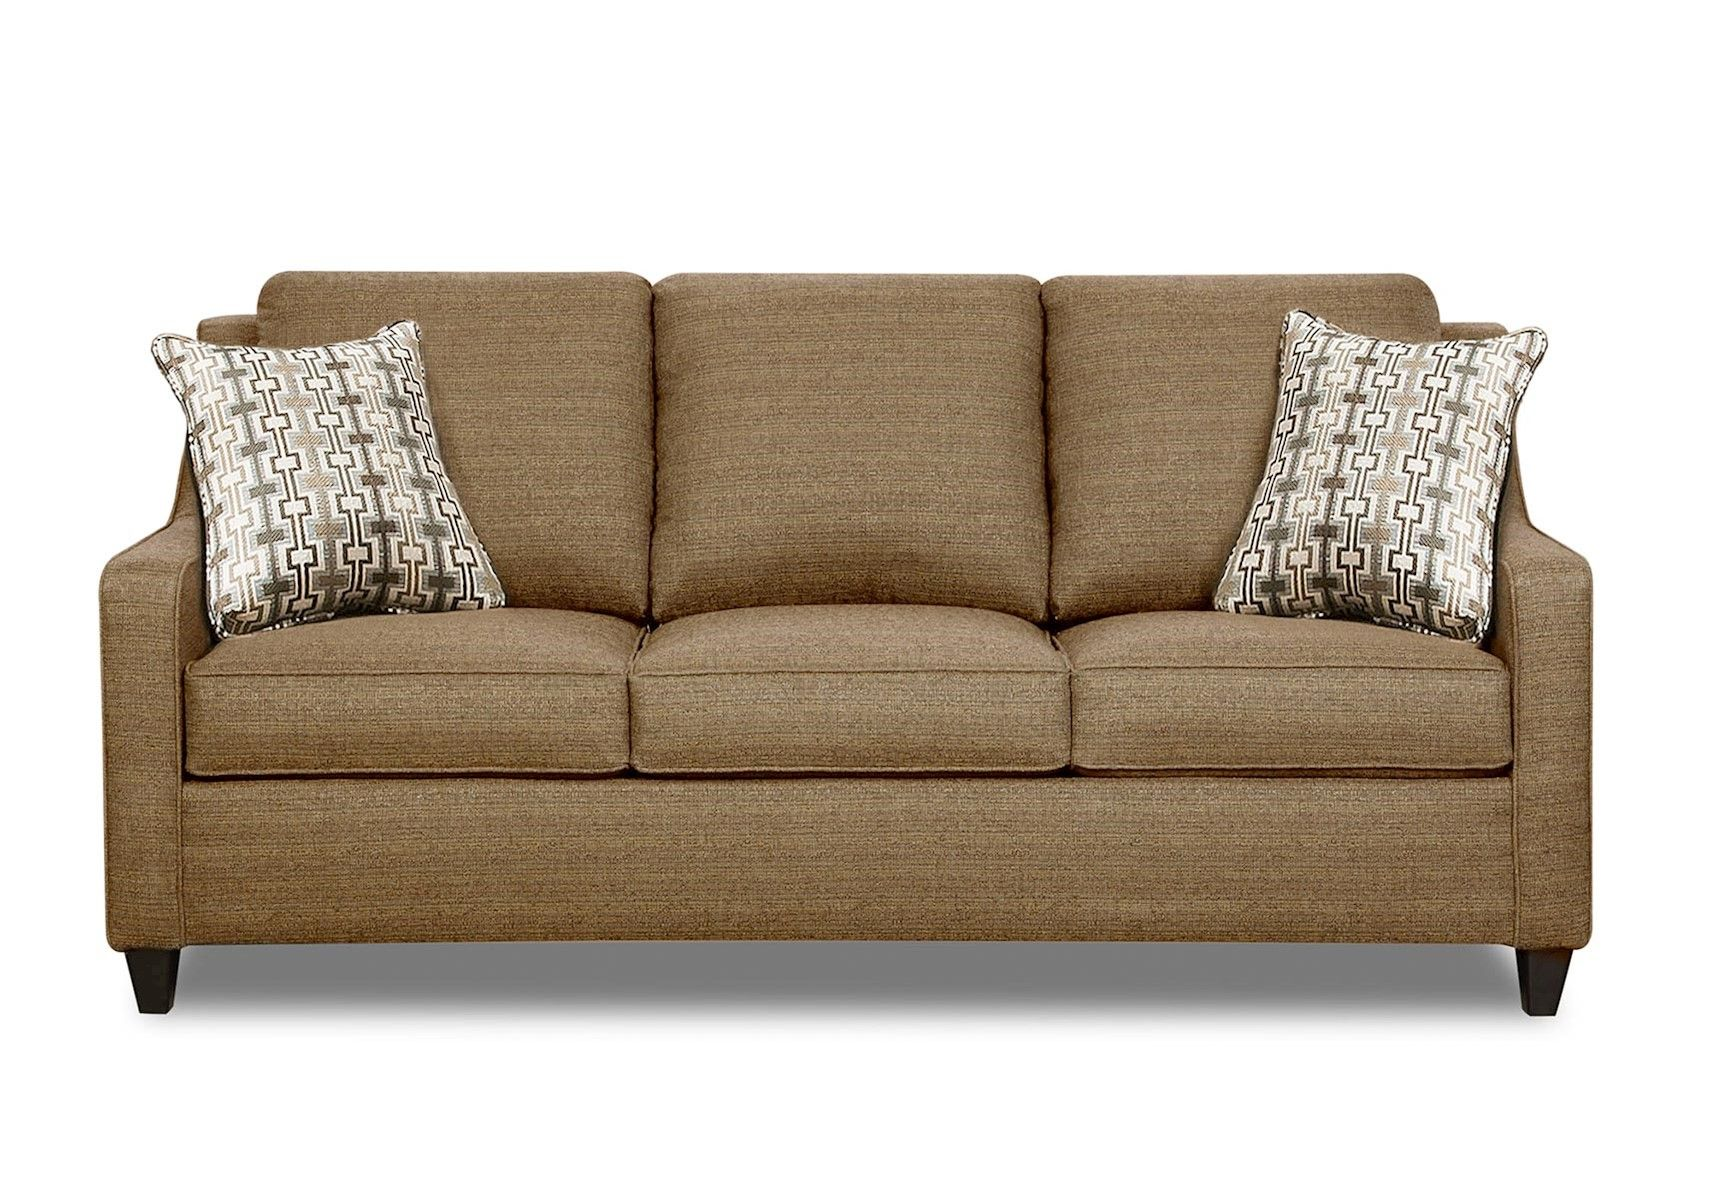 Lacks I S Queen Sleeper Sofa